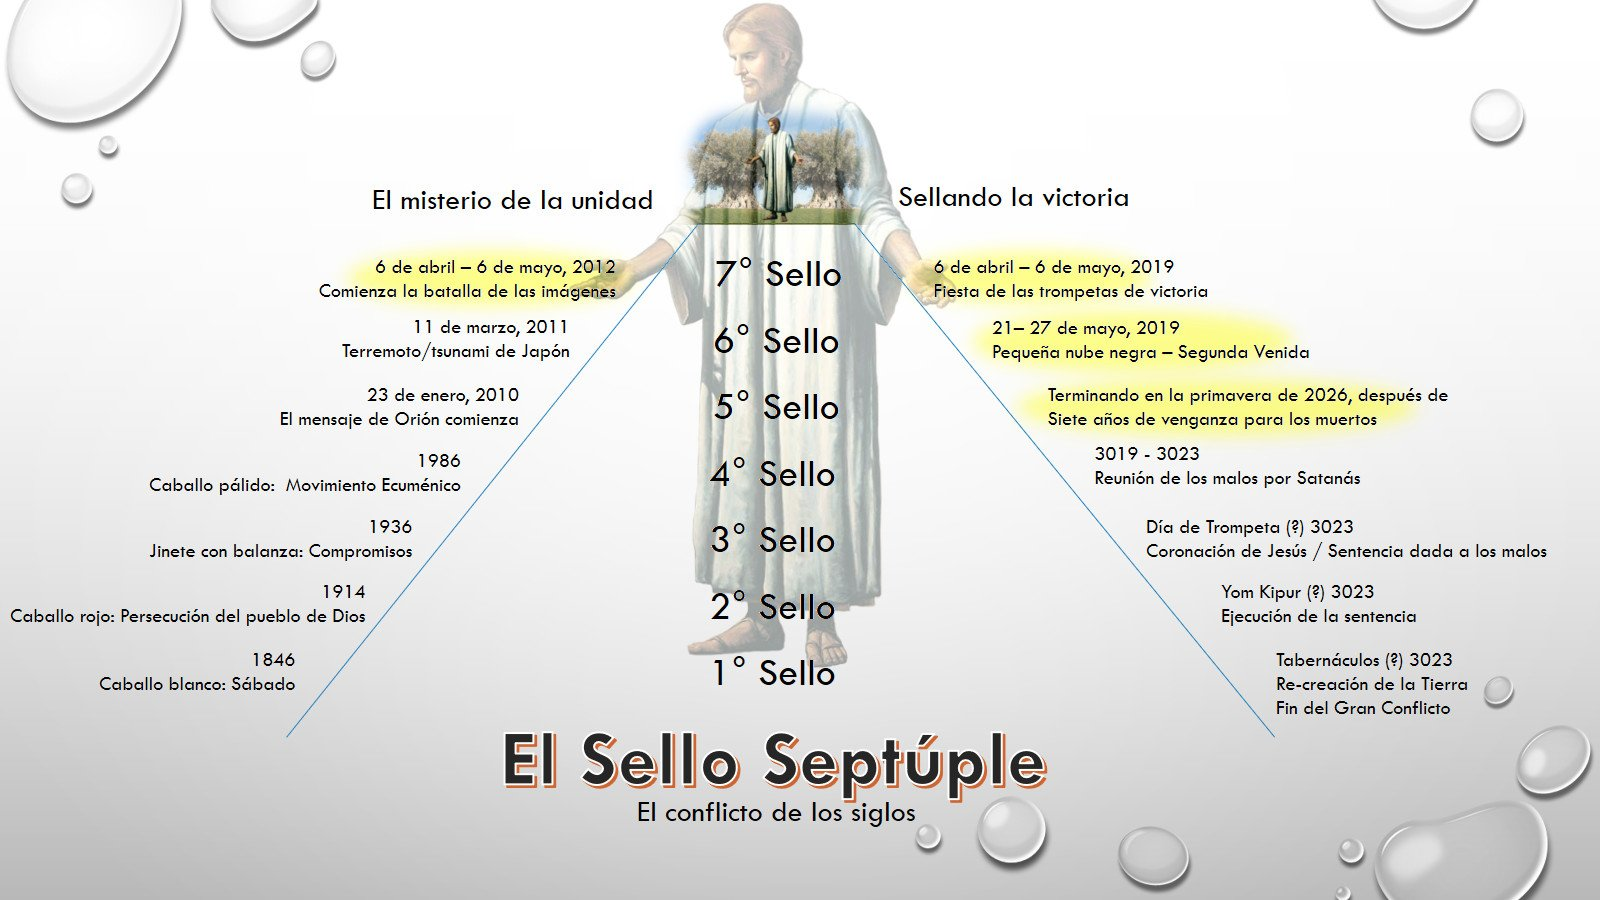 El sello séptuple